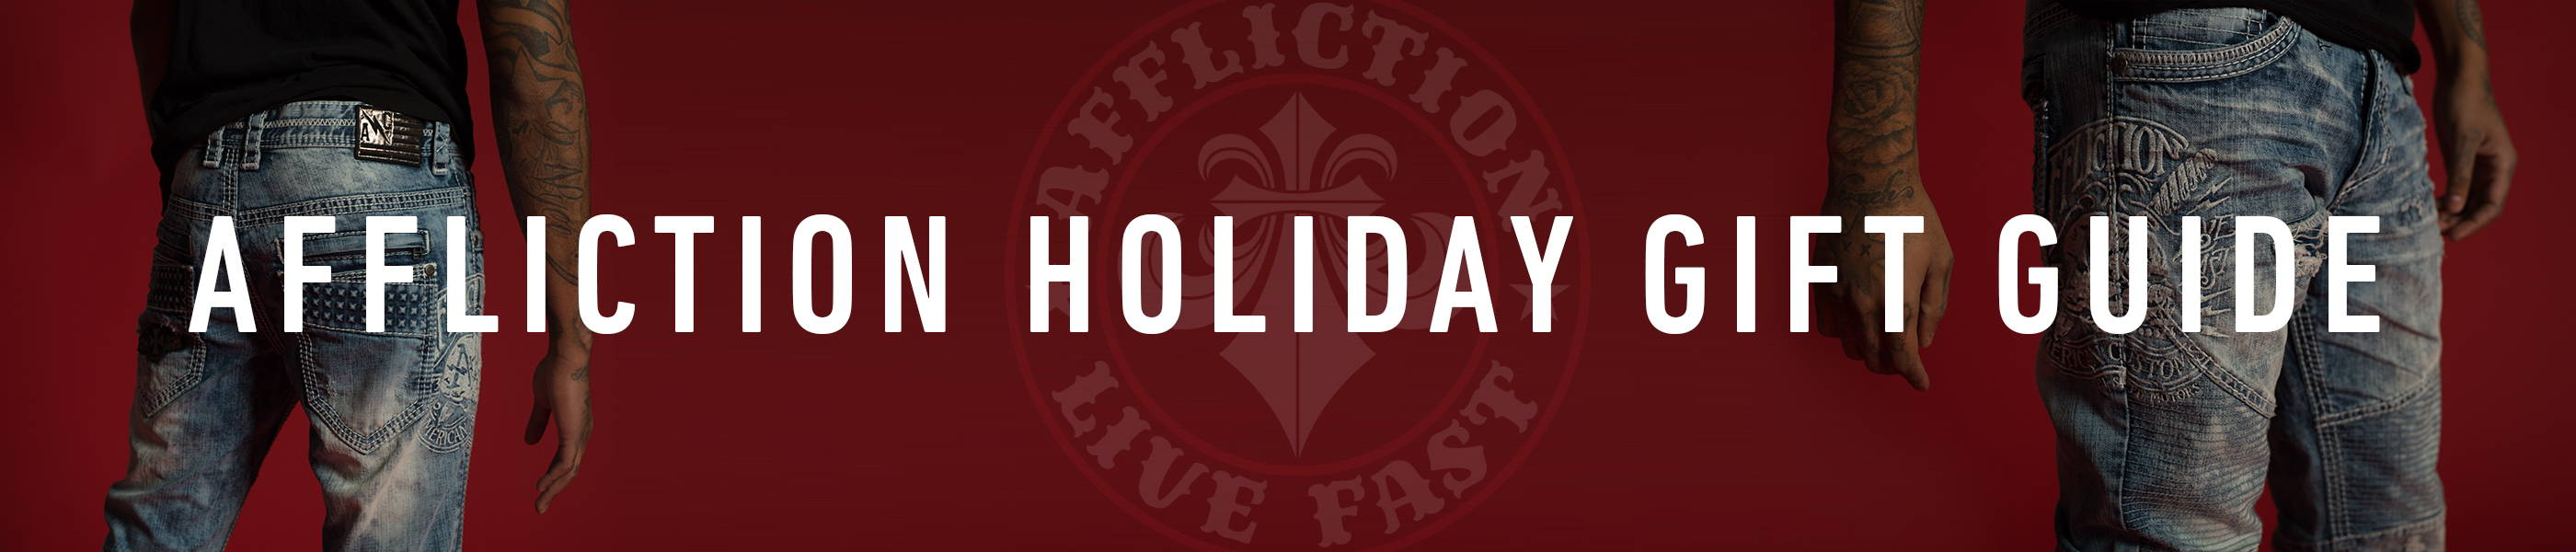 Affliction Holiday Gift Guide 2018